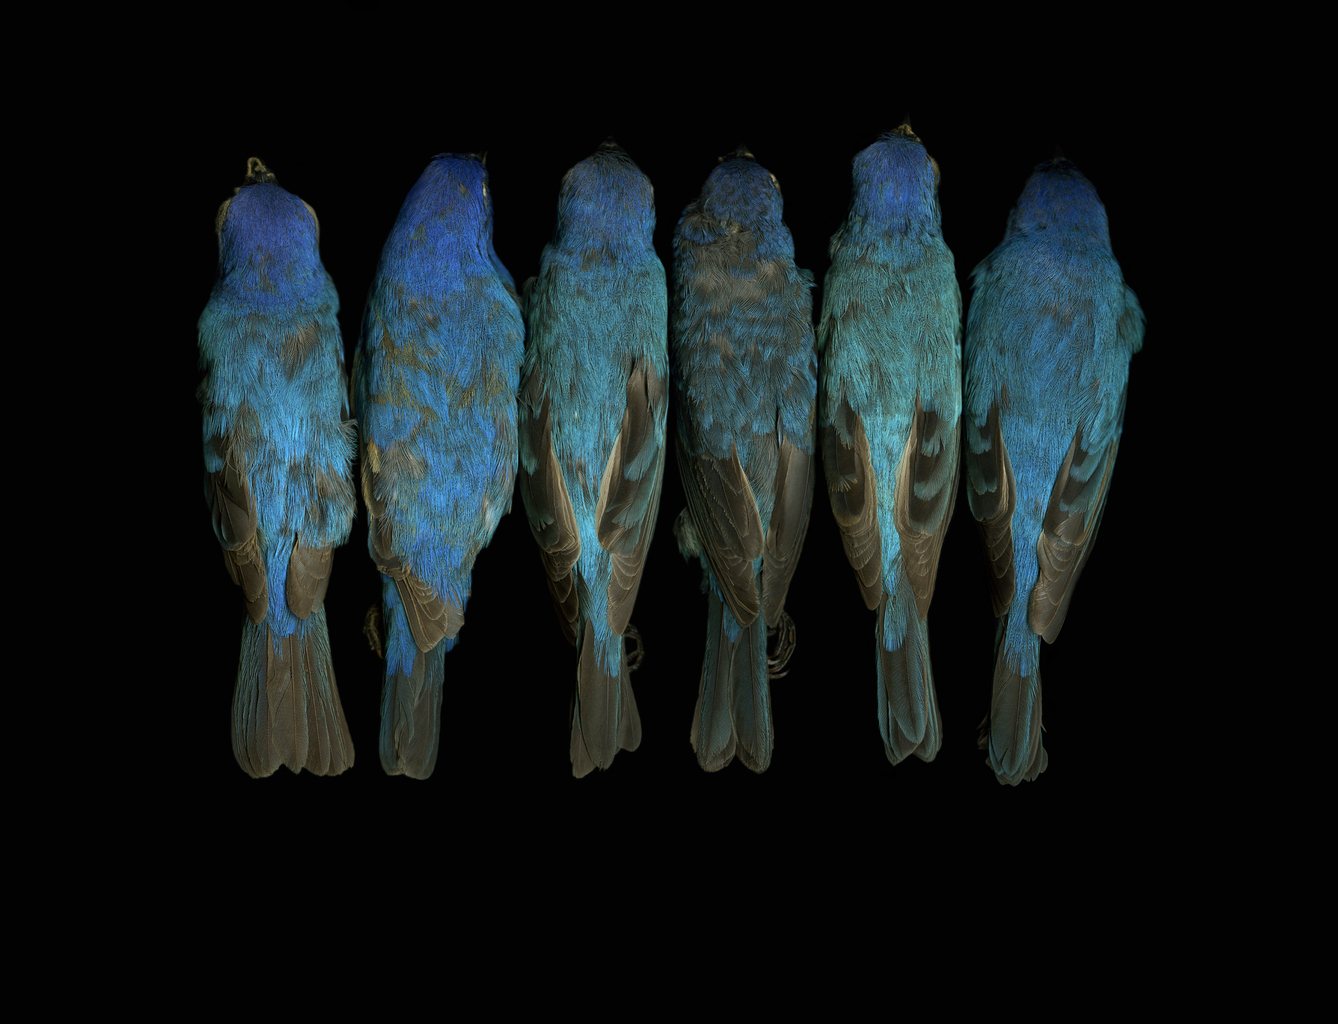 Passerina cyanea, Indigo bunting, North Carolina Museum of Natural Sciences, 2007